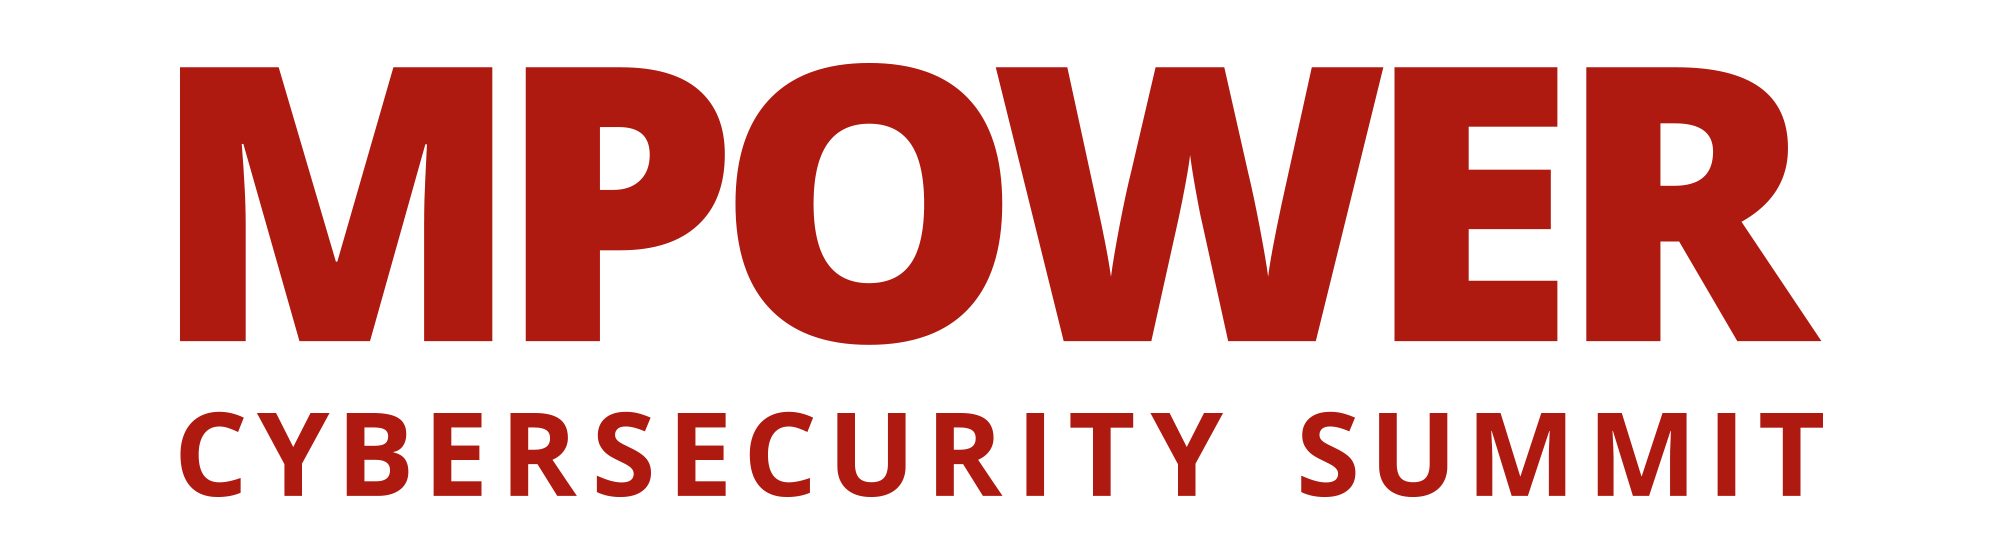 McAfee MPower Cyber Security Summit